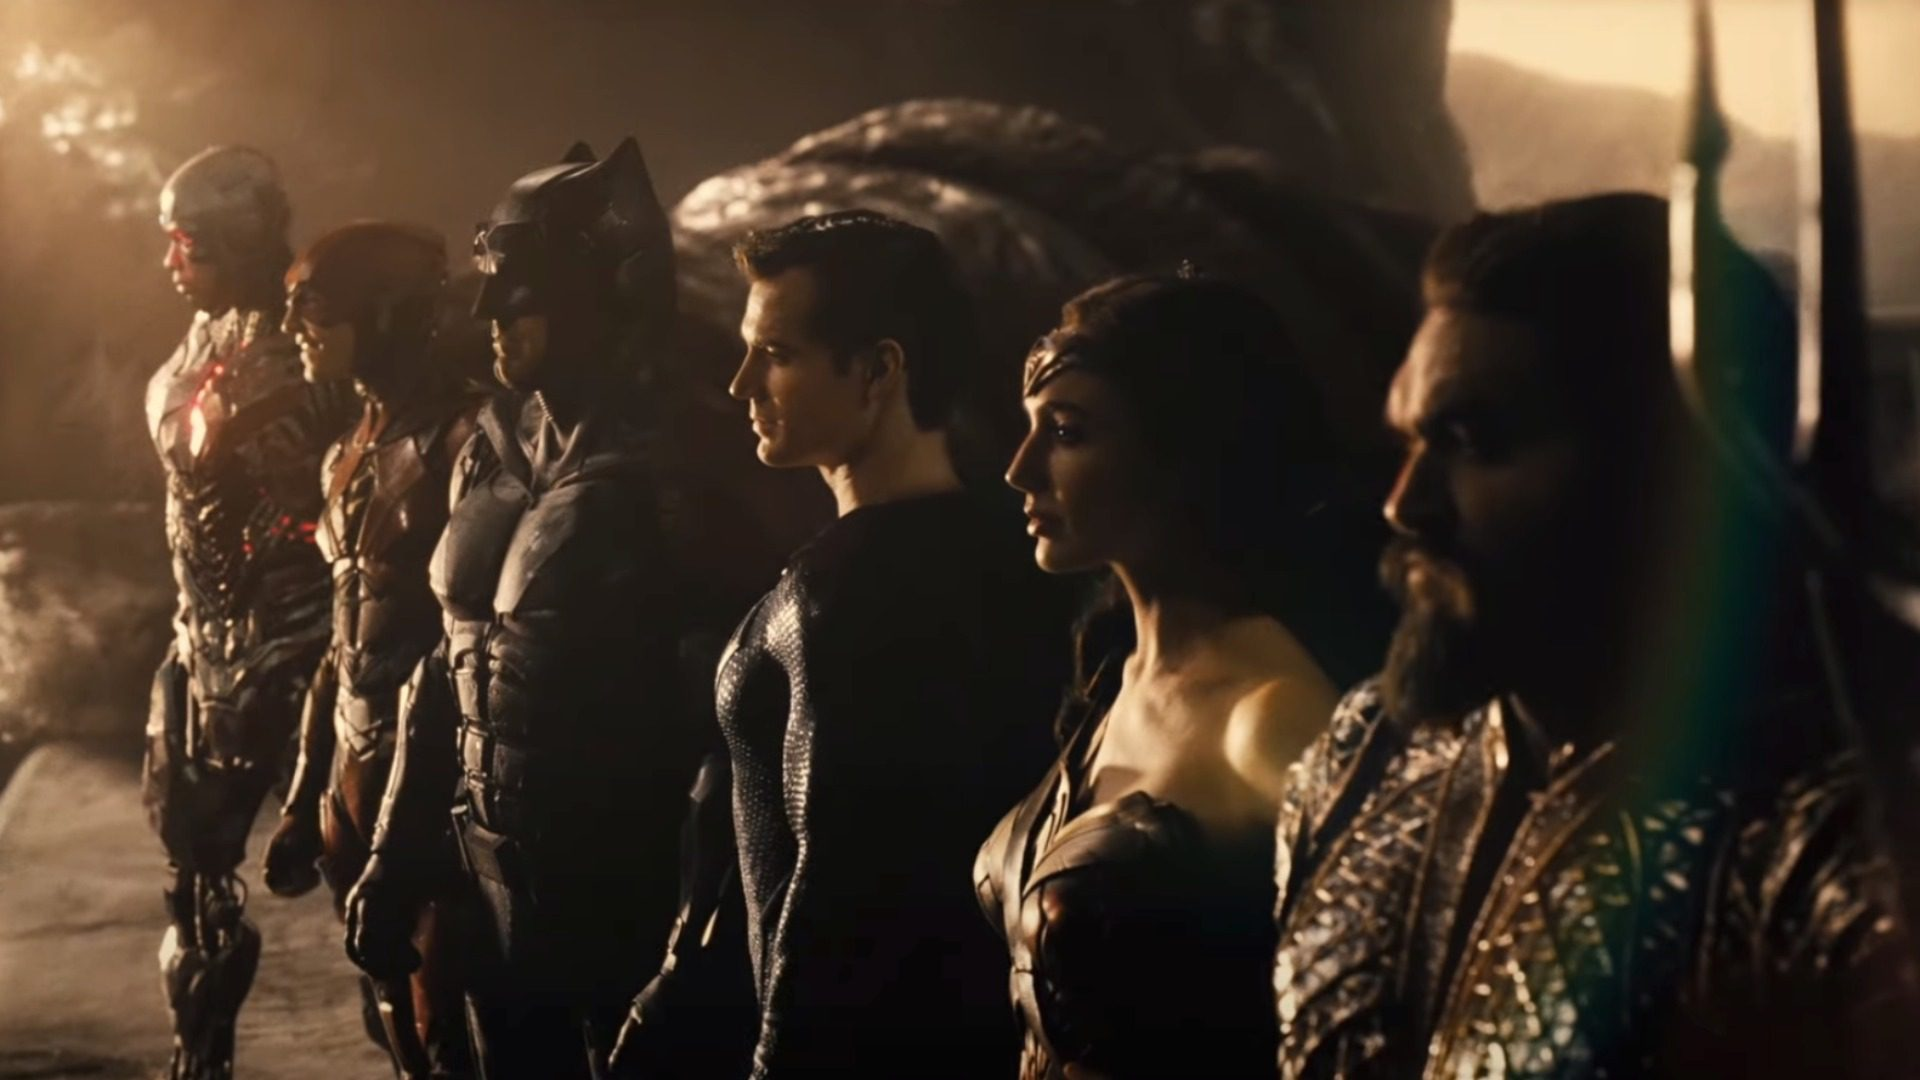 justice-league-snyder-cut-ending-explained:-is-darkseid-coming?